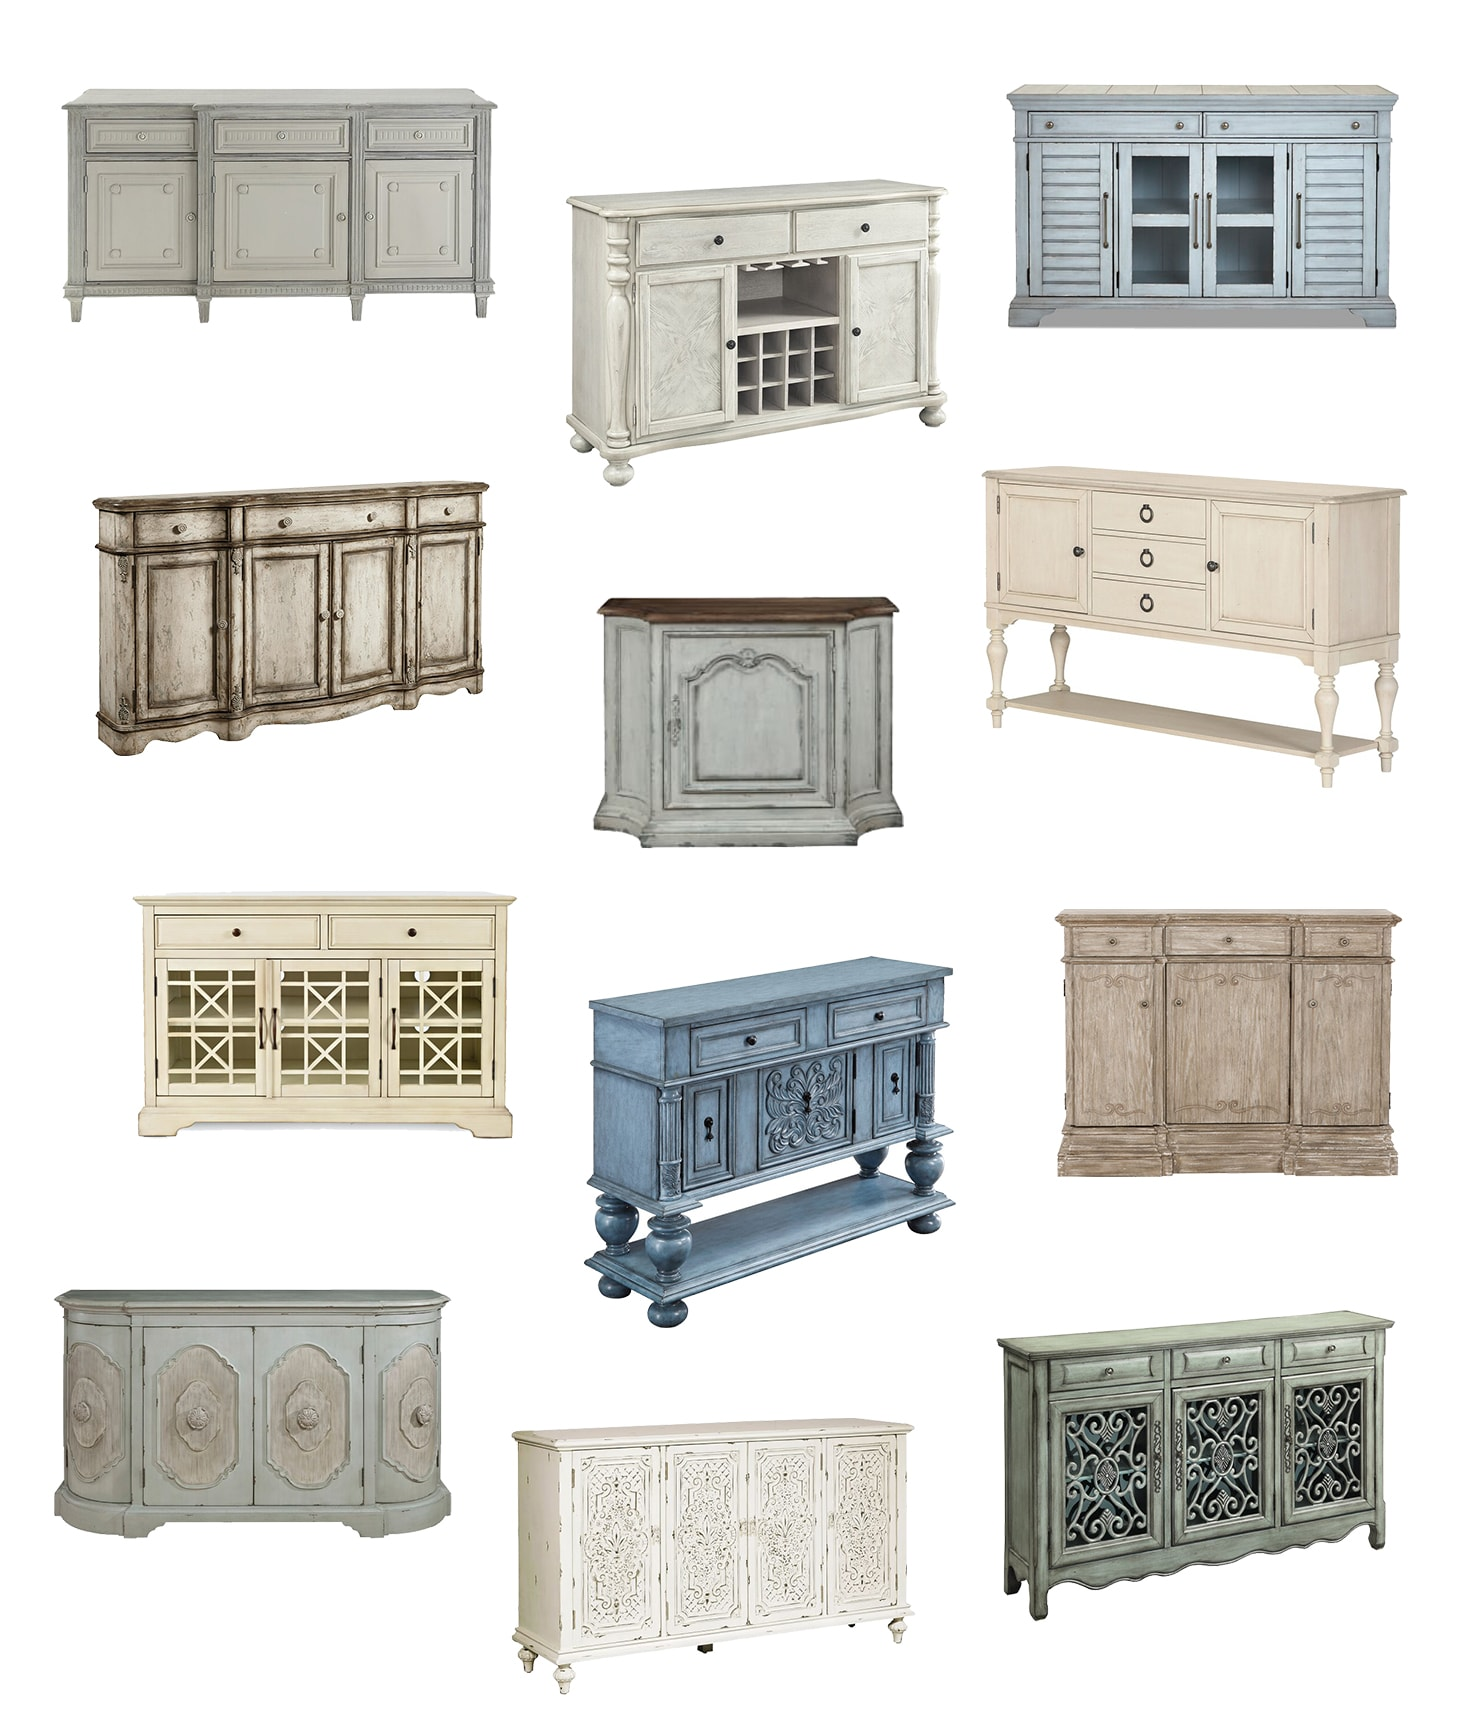 Where to Buy French Farmhouse Buffets & Sideboards